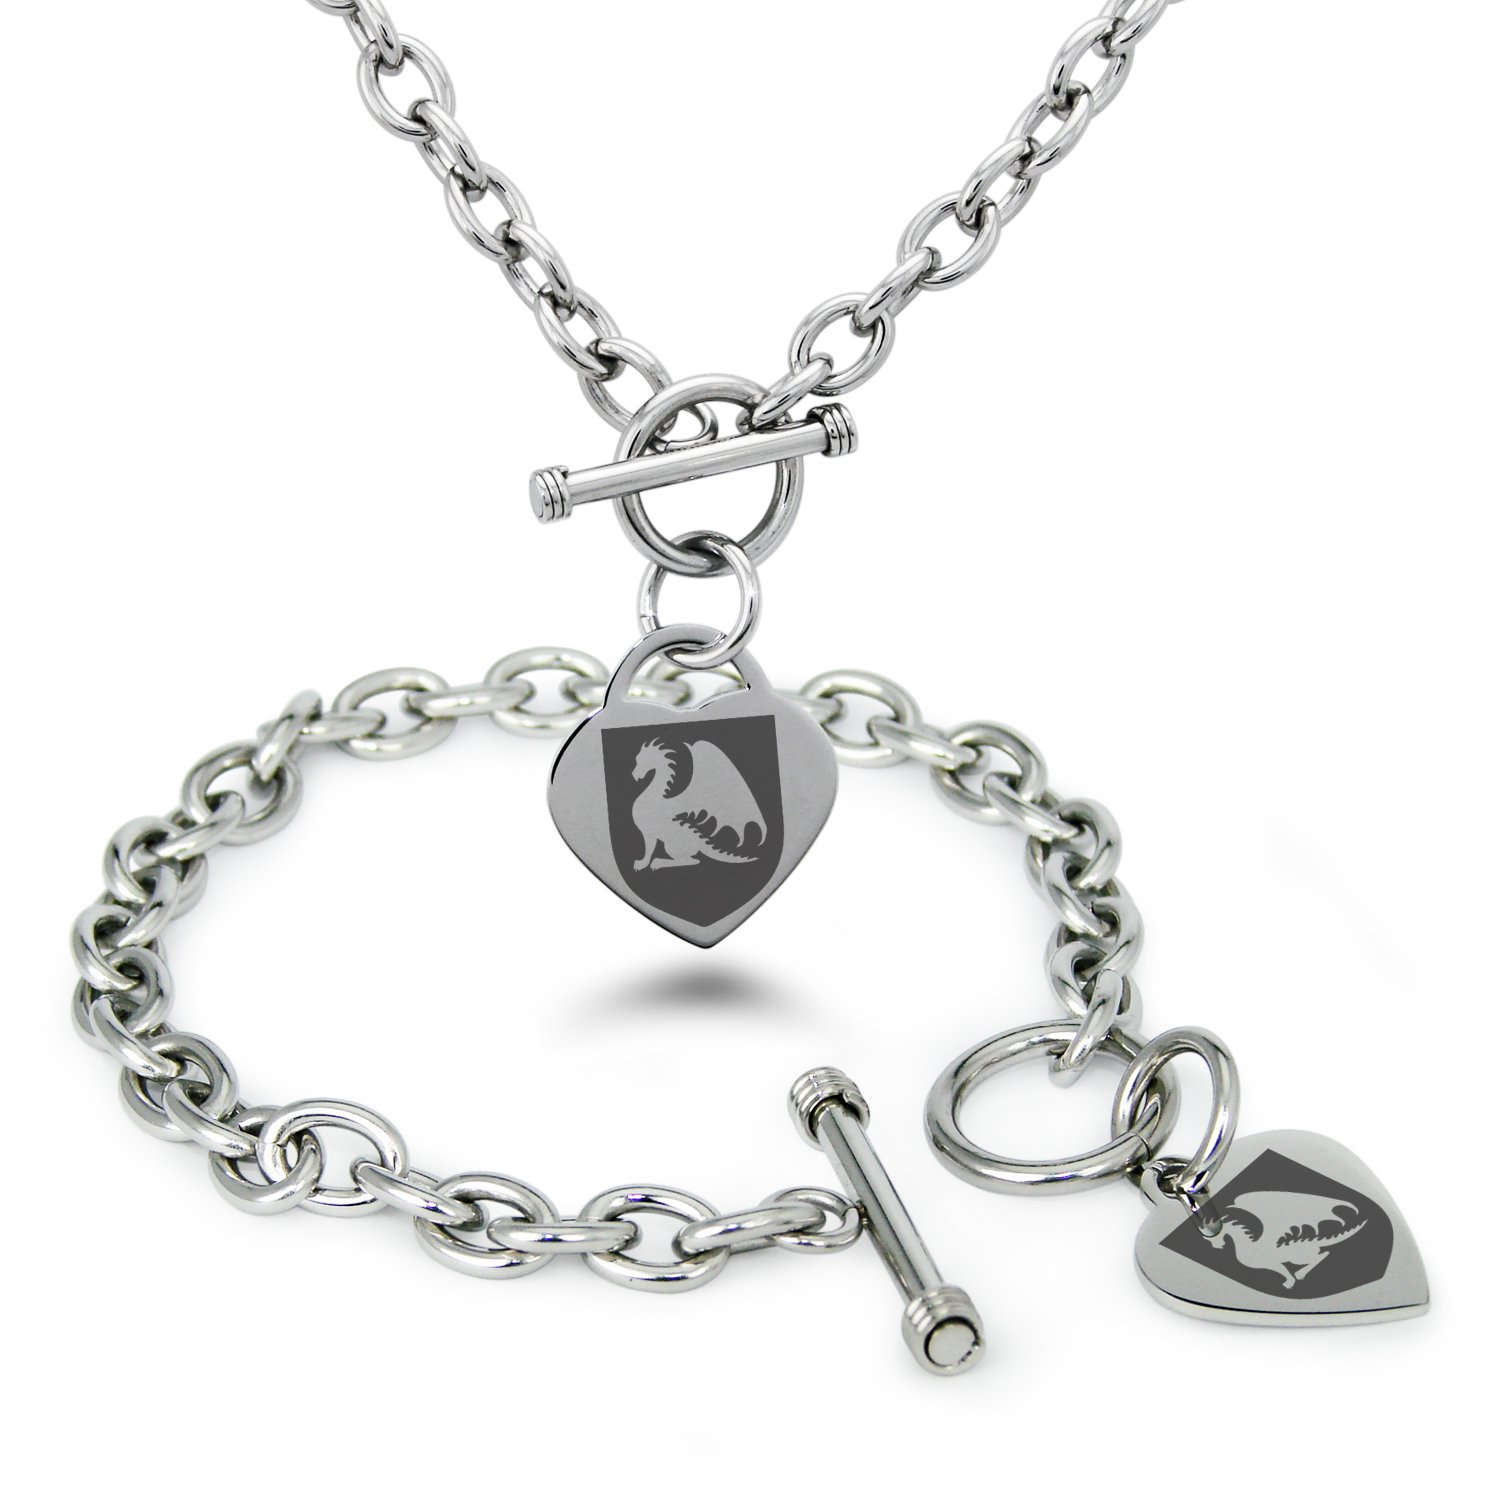 Tioneer Stainless Steel Dragon Guardian Coat of Arms Shield Symbols Heart Charm, Bracelet & Necklace Set